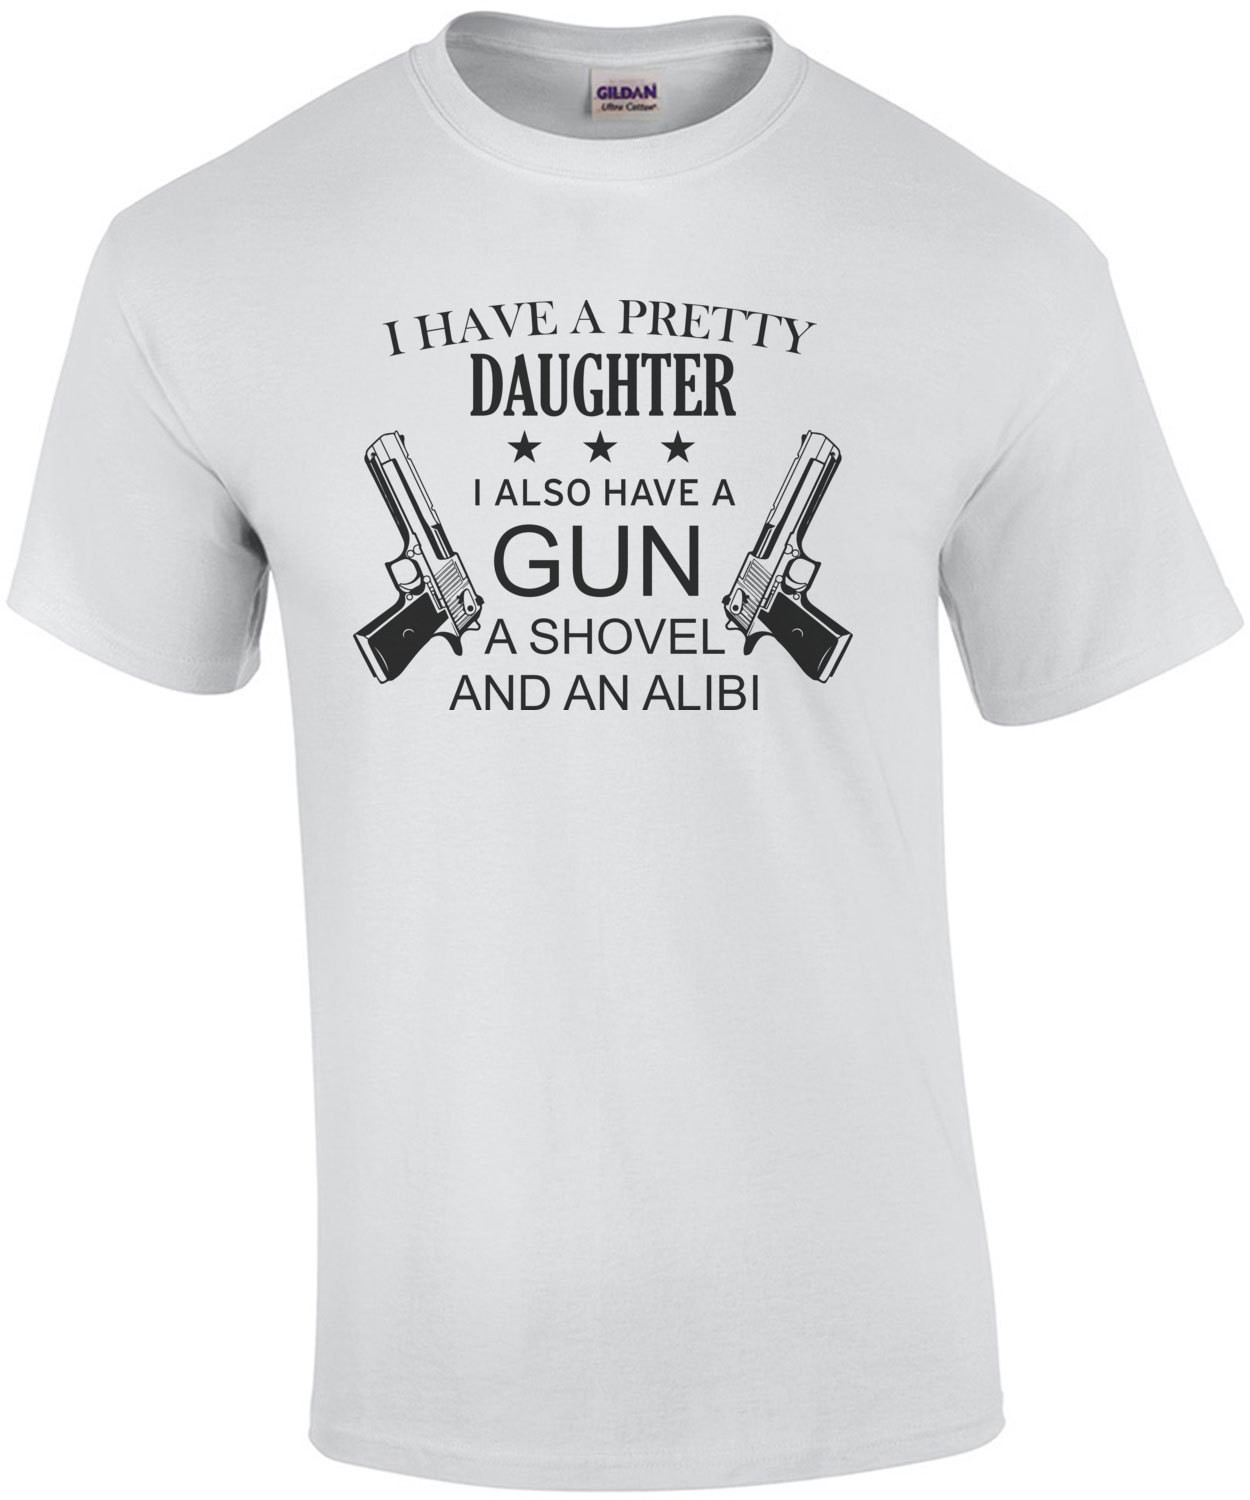 I have a pretty daughter. I also have a gun, a shovel, and an alibi - funny father daughter